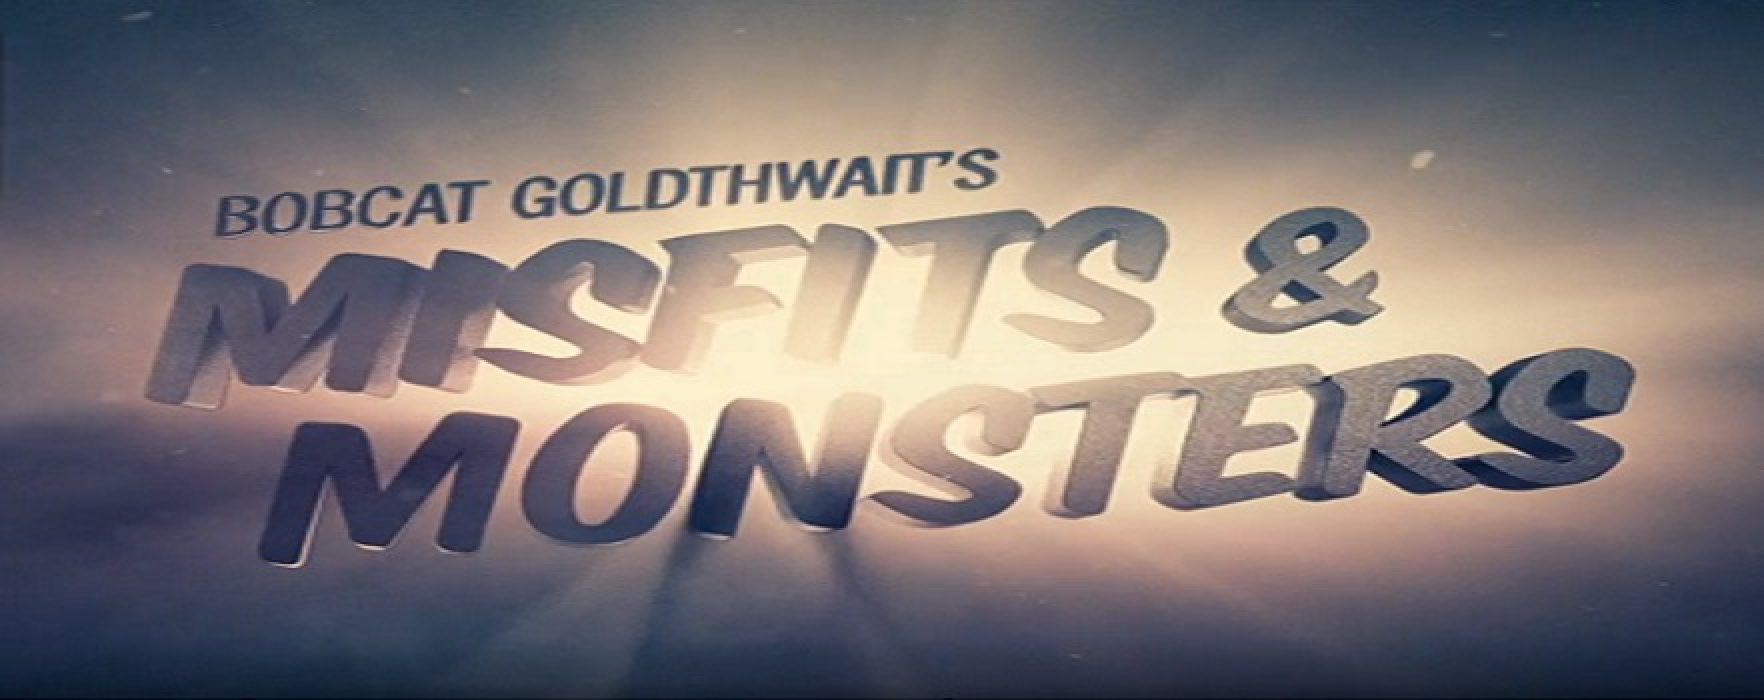 Misfits & Monsters Fits the Bill